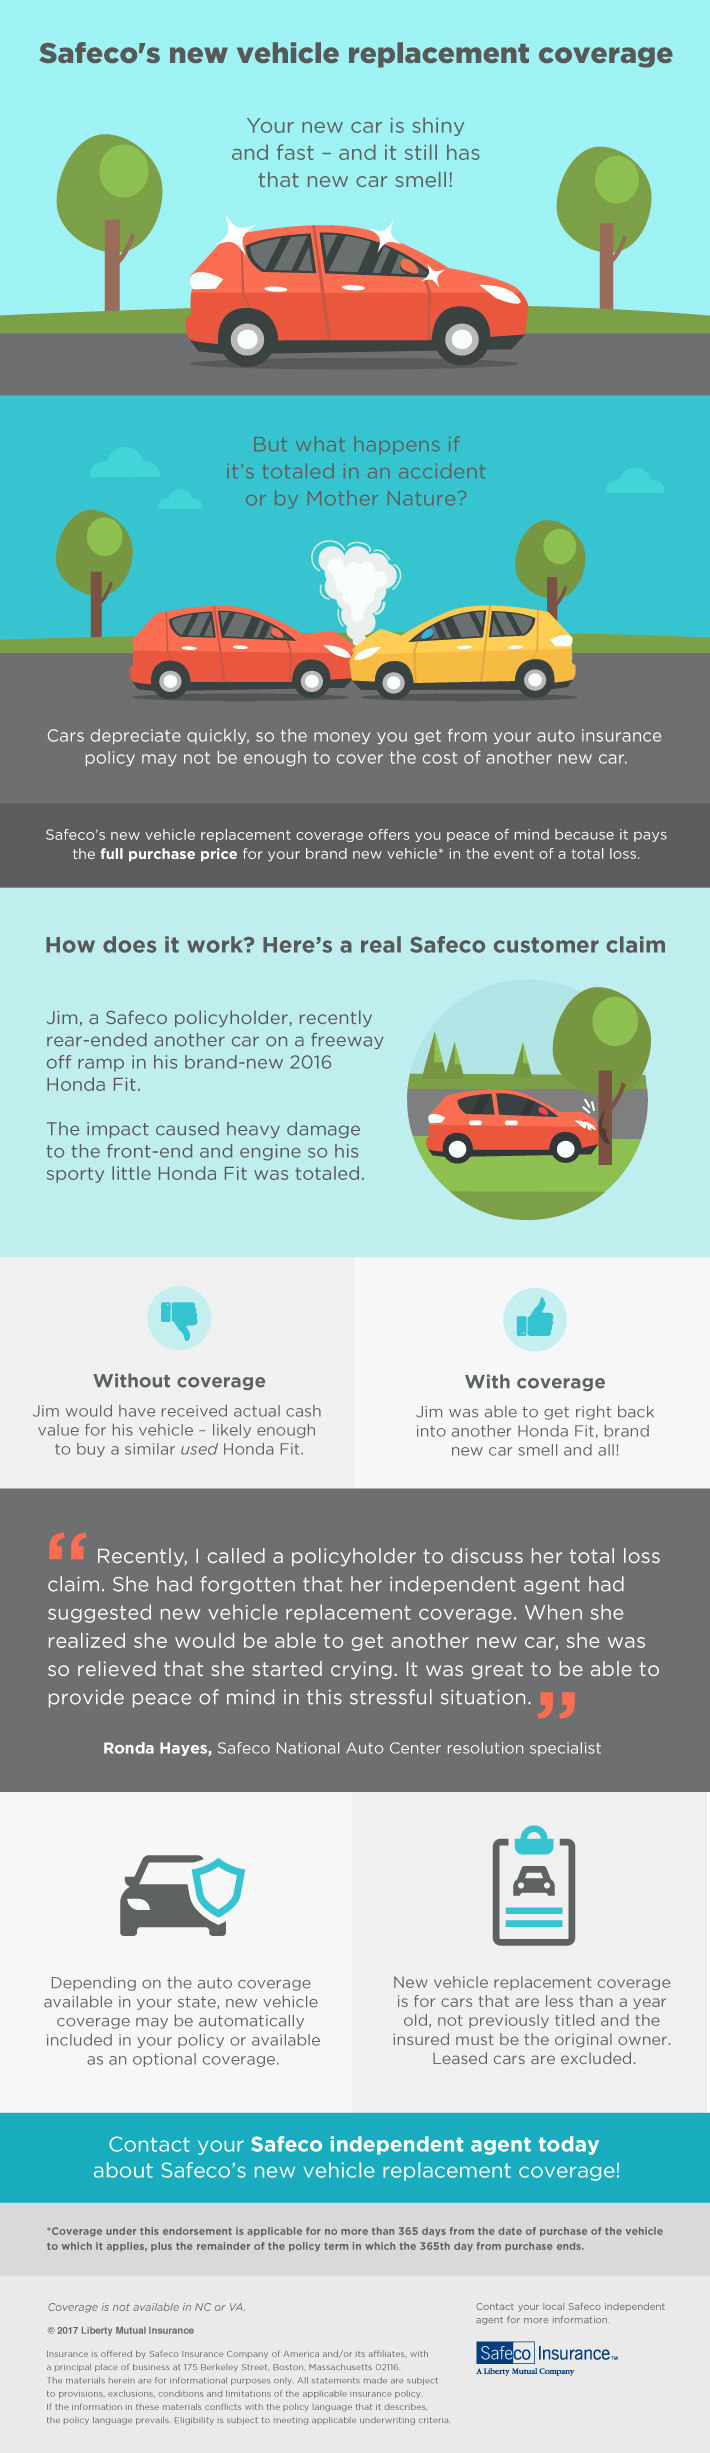 safeco insurance claims - 341×1024